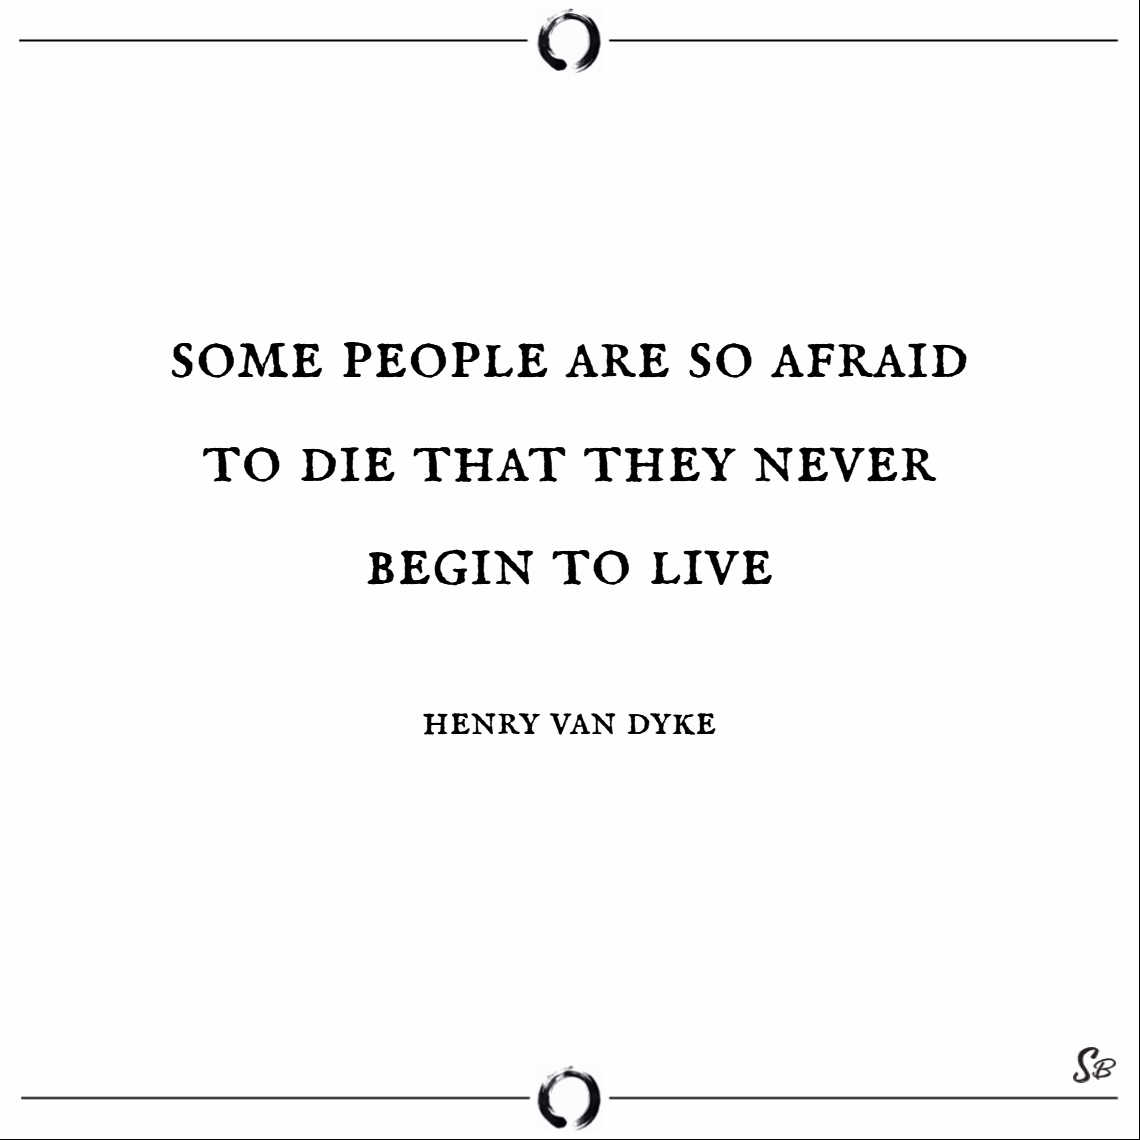 Some people are so afraid to die that they never begin to live. – henry van dyke death quotes